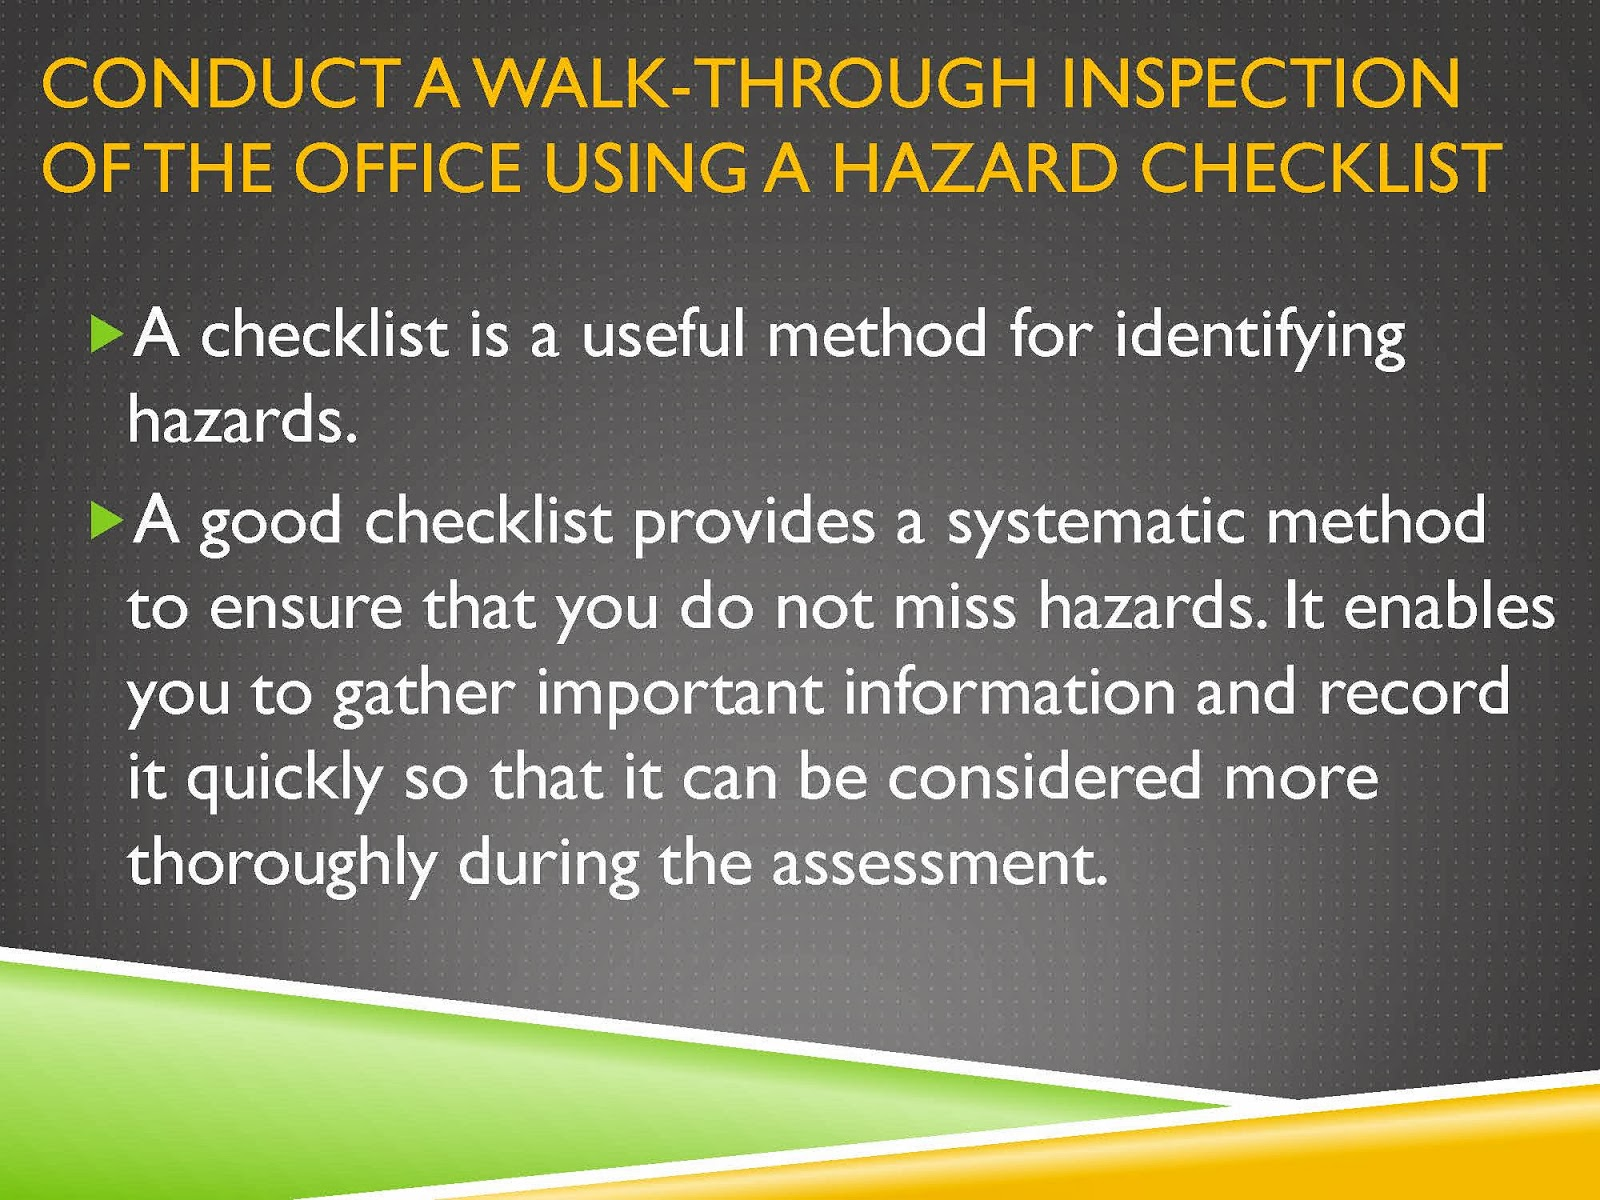 WALK-THROUGH OCCUPATIONAL HEALTH AND SAFETY HAZARD CHECKLIST